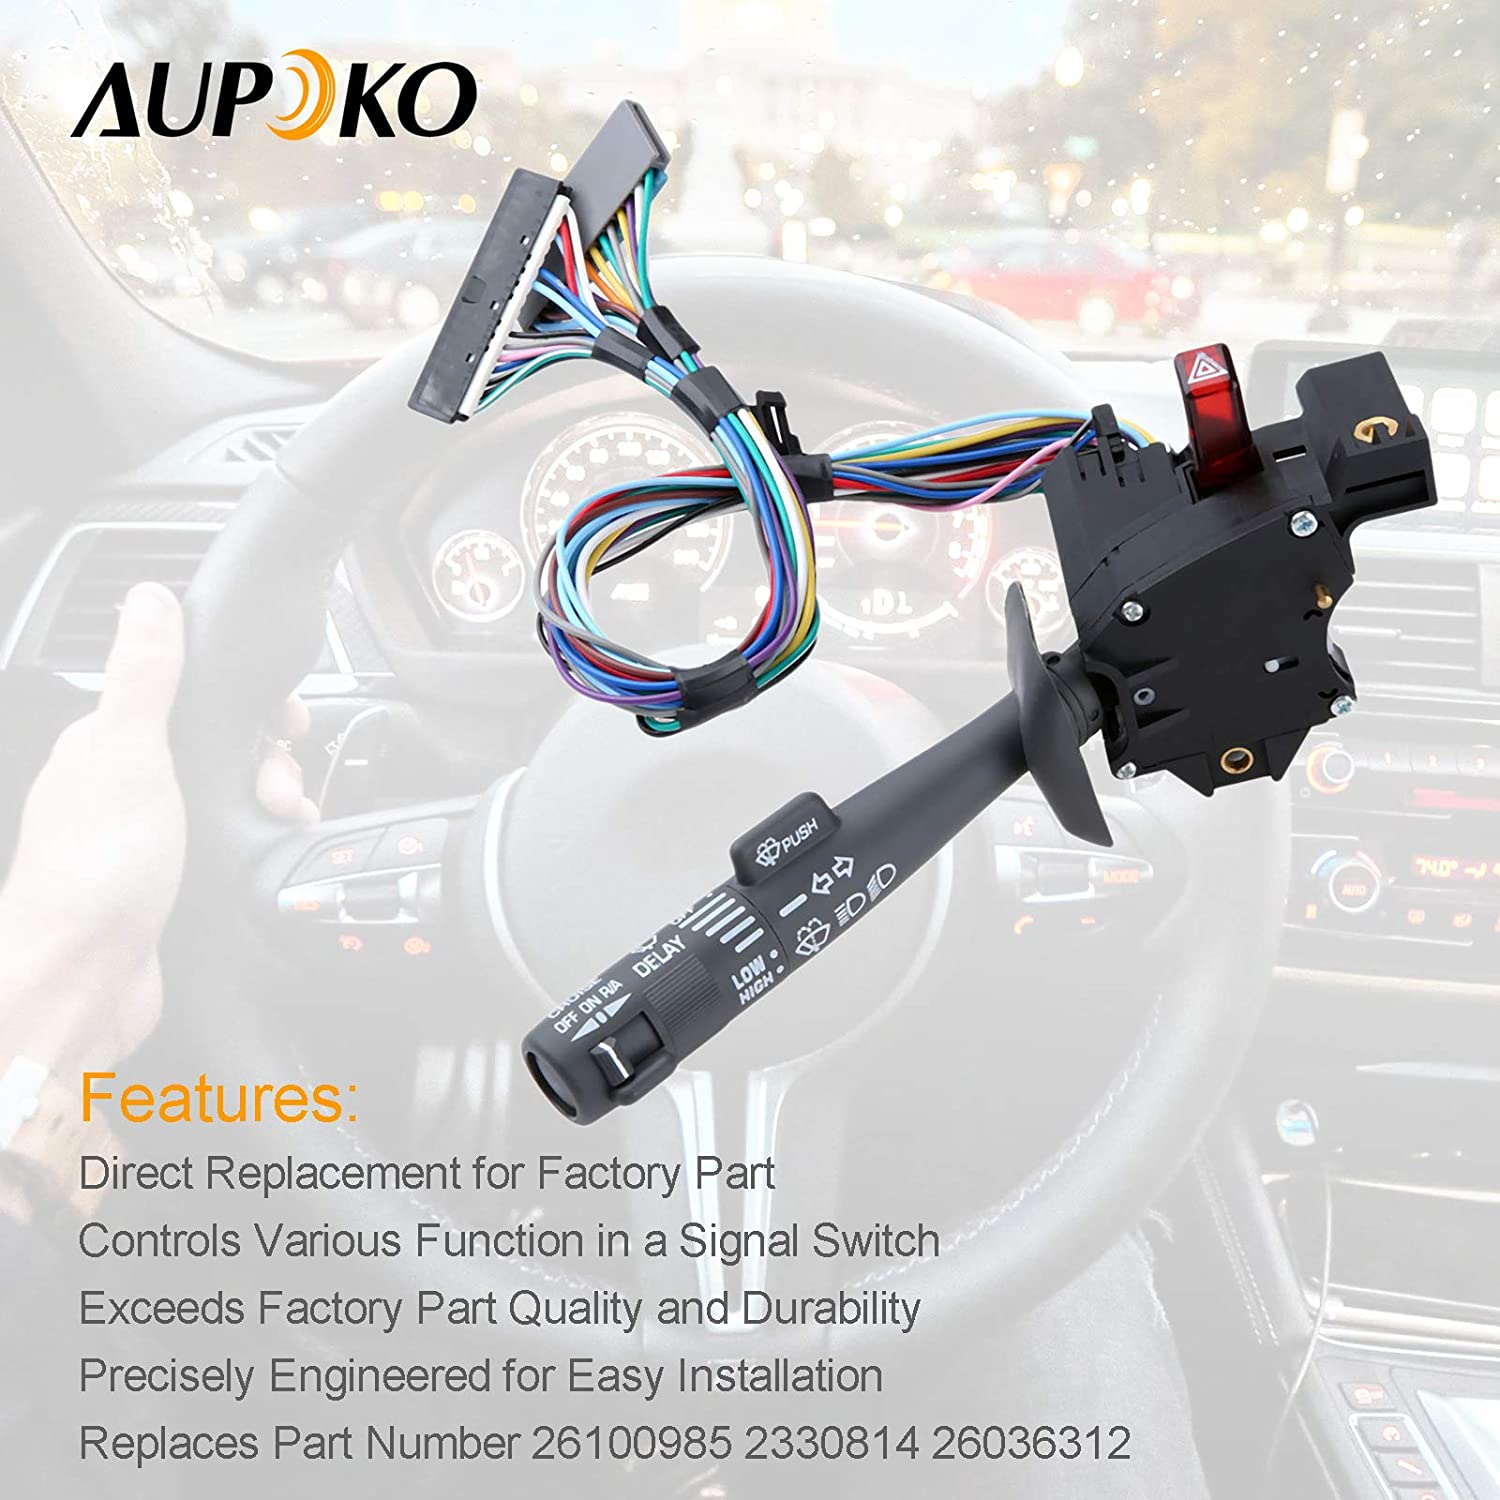 Multi-Function Combination Switch Wiper Hazard Switch 26100985 26036312 D826A- Chevy Tahoe Replaces Part # 2330814 Sierra Turn Signal Blazer Cruise Control Suburban Washers K1500